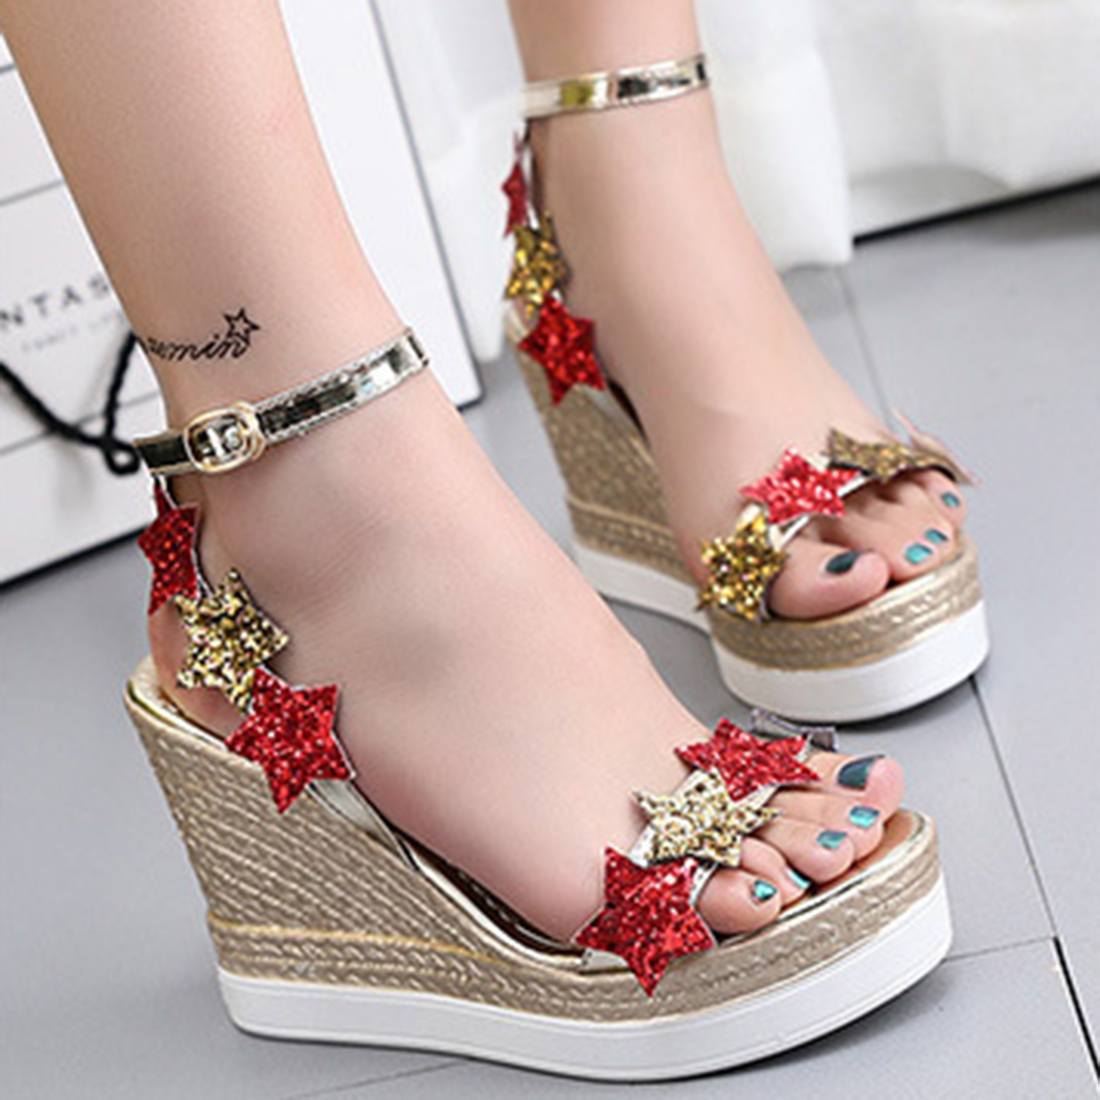 Mixed Color Fashion Summer Wedges Women's Sandals Platform Bling Stars Flip Flops open toe high-heeled Women shoes Female 2017 summer new wedges women s flip flops bling shoes woman high heeled sandals sequins antiskid platform women sandal black